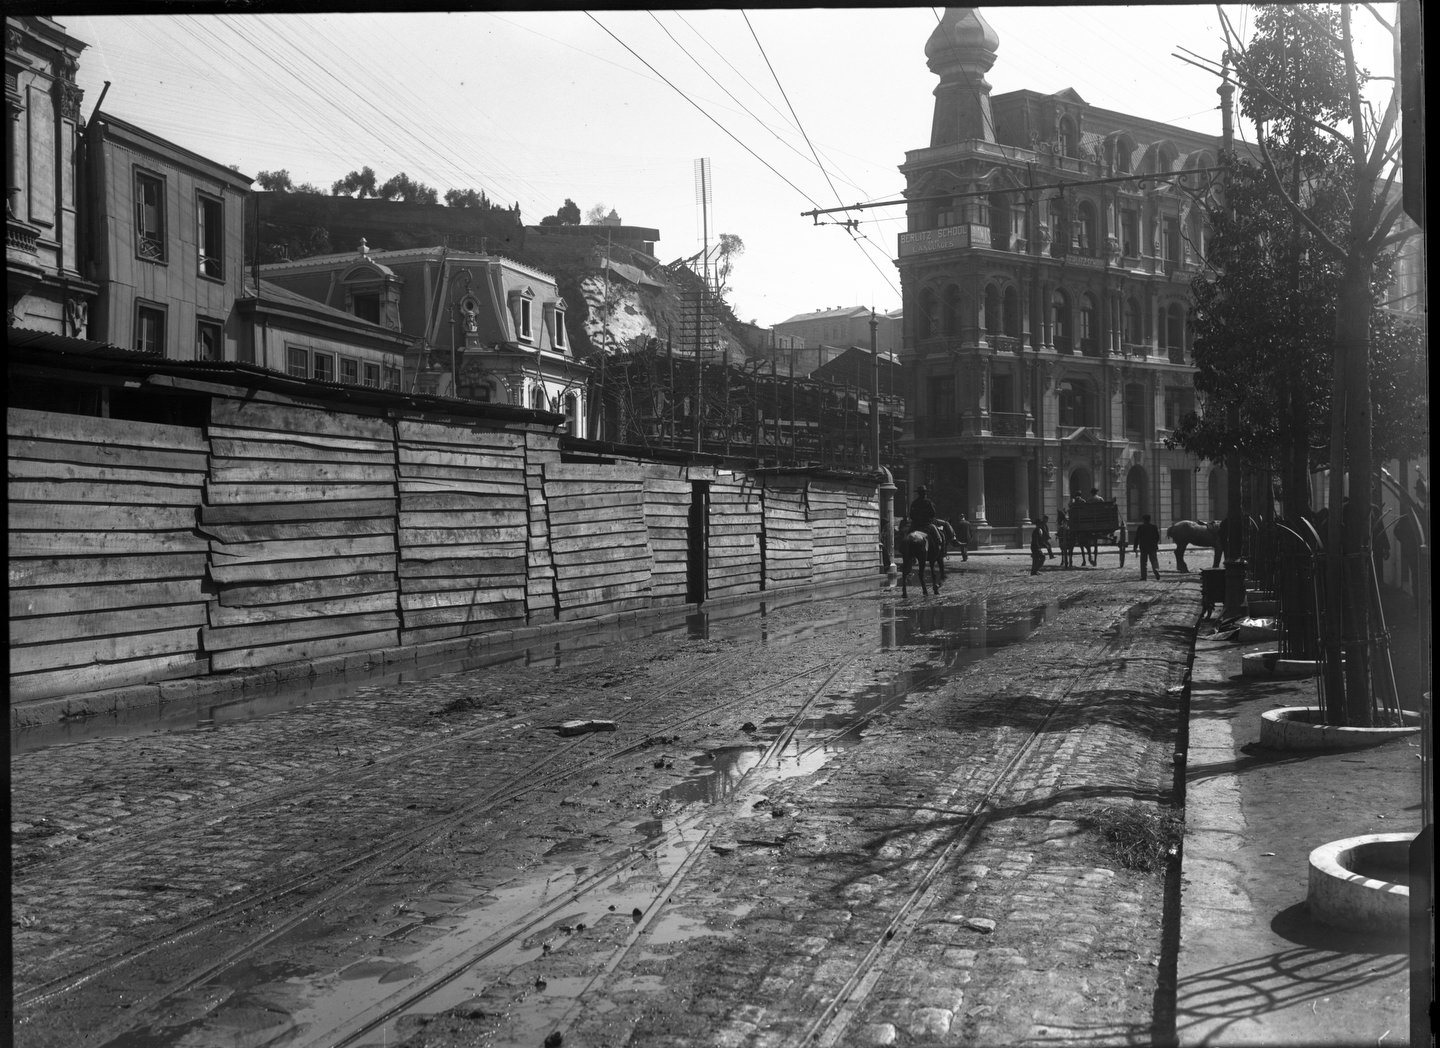 Enterreno - Fotos históricas de chile - fotos antiguas de Chile - Terremoto Valparaiso, 1906